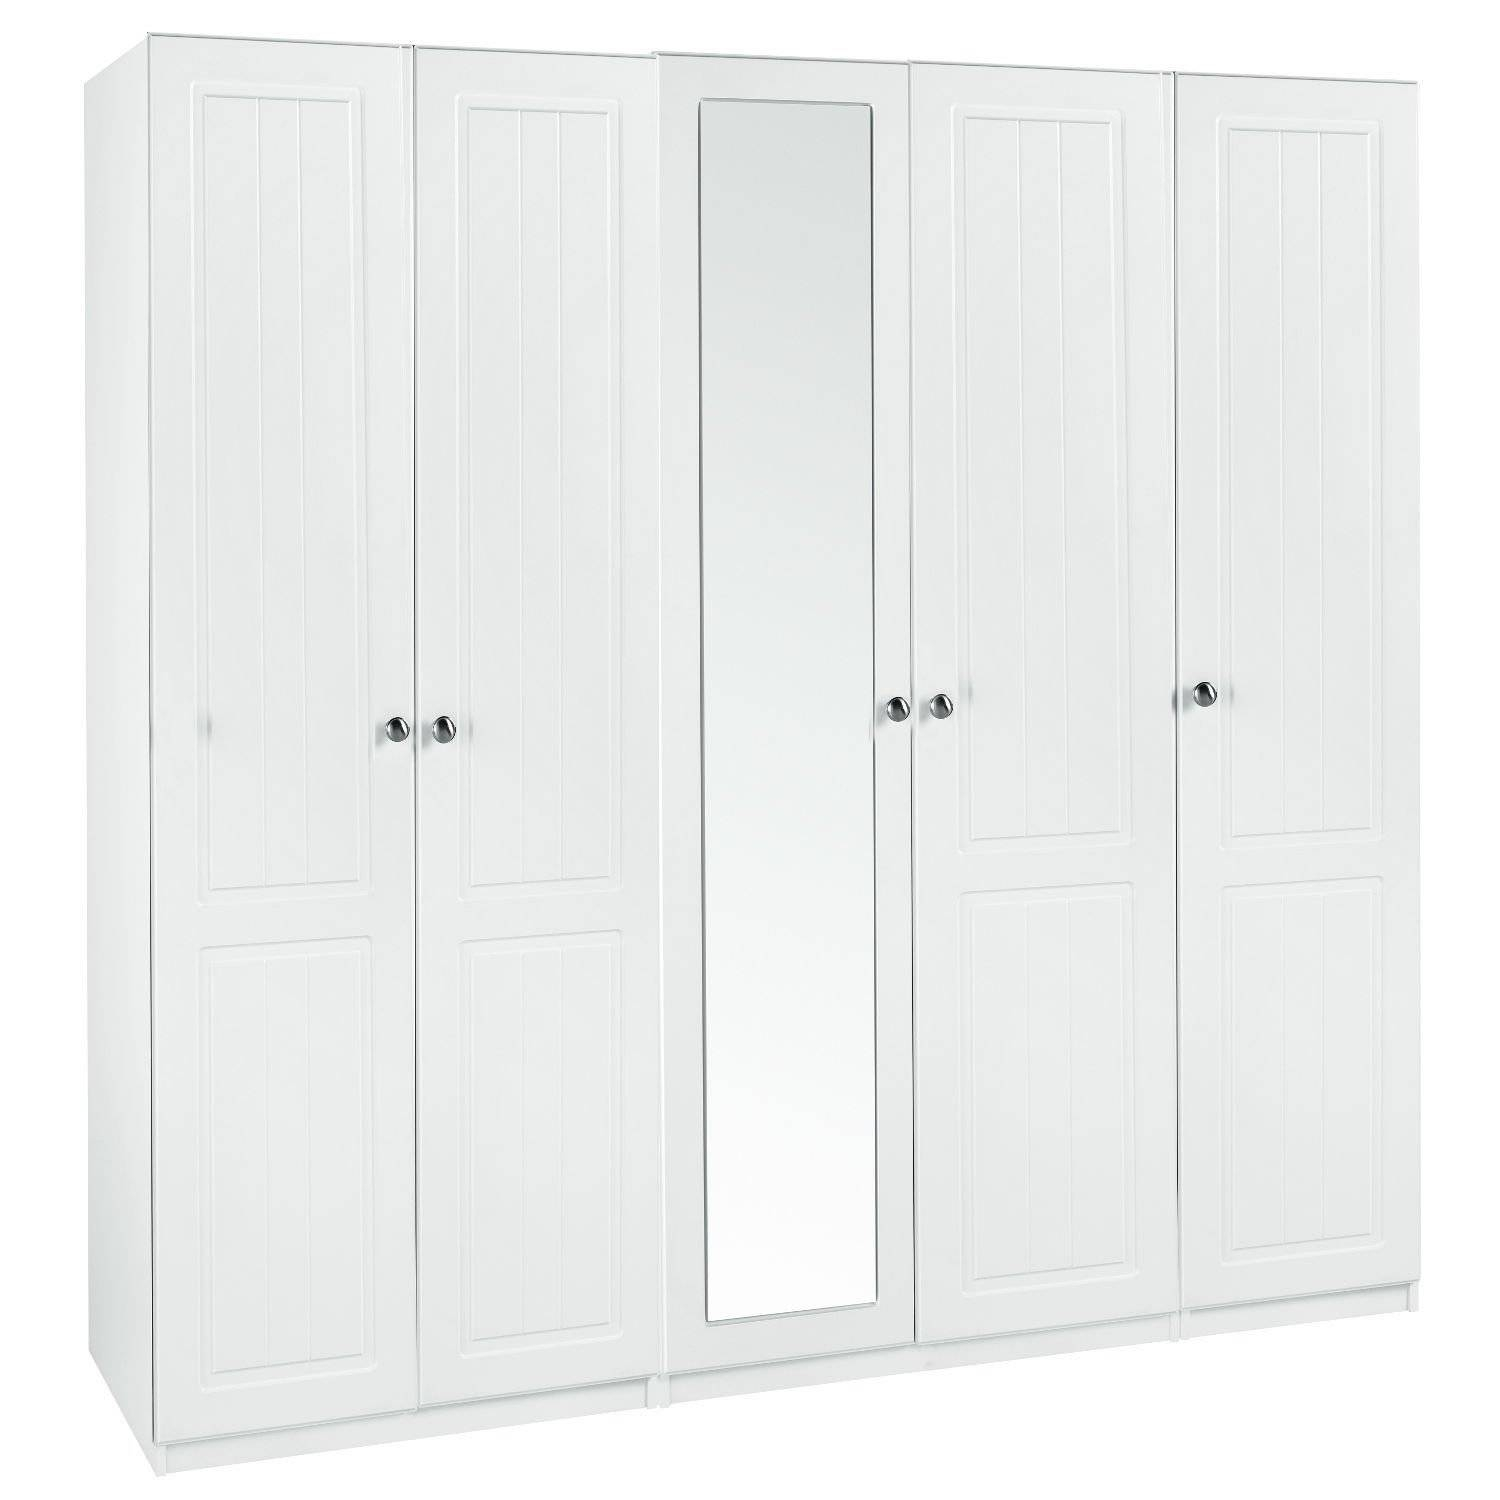 Calando Tall 5 Door Mirrored Wardrobe – Next Day Delivery Calando for 5 Door Mirrored Wardrobes (Image 4 of 15)